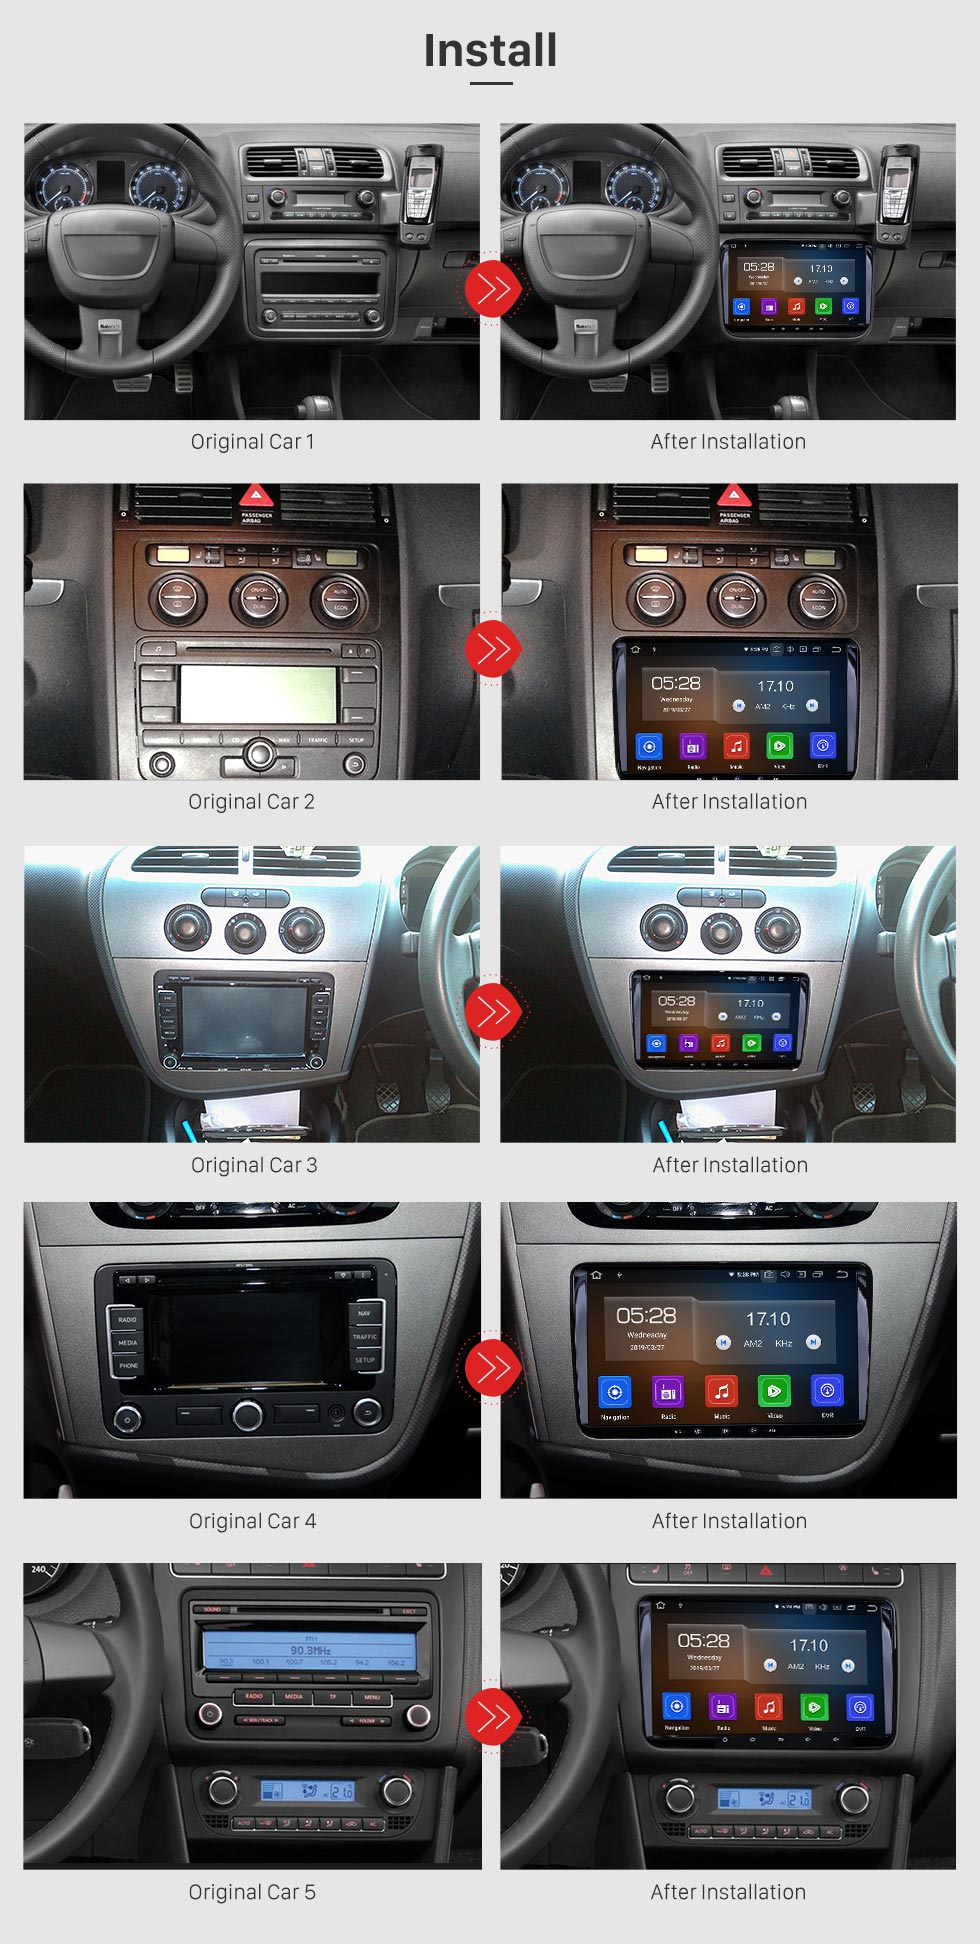 Seicane Android 9.0 2005-2011 Seat Leon GPS DVD Player In Dash Radio System with HD touch Screen Bluetooth 3G WiFi Mirror Link OBD2 DVR Backup Camera